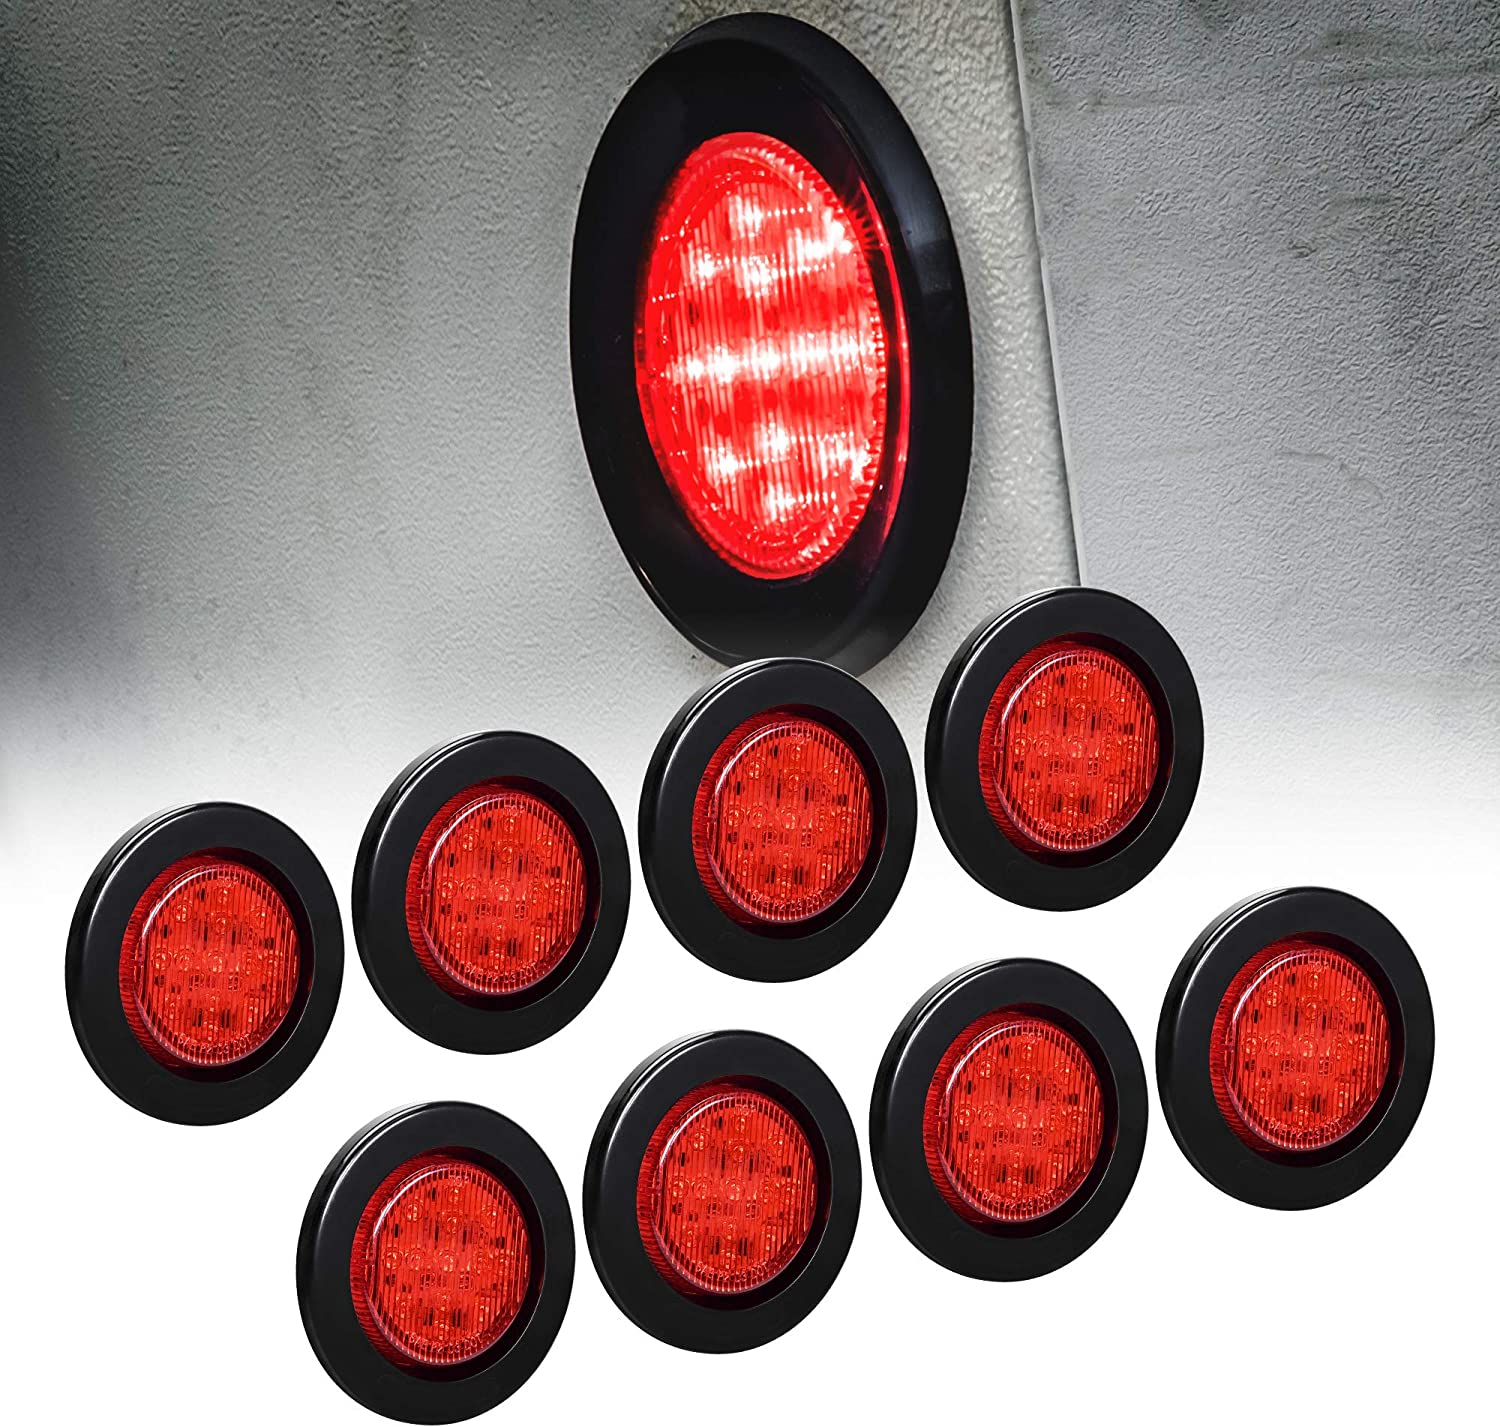 "8pc 2.5"" Red Round Trailer LED Marker Lights [DOT Approved] [Reflector Lens][13 LED] [Grommet] [Flush-Mount] [Waterproof IP67] Marker Lights for Trailer Truck 81XFZatyK2L"